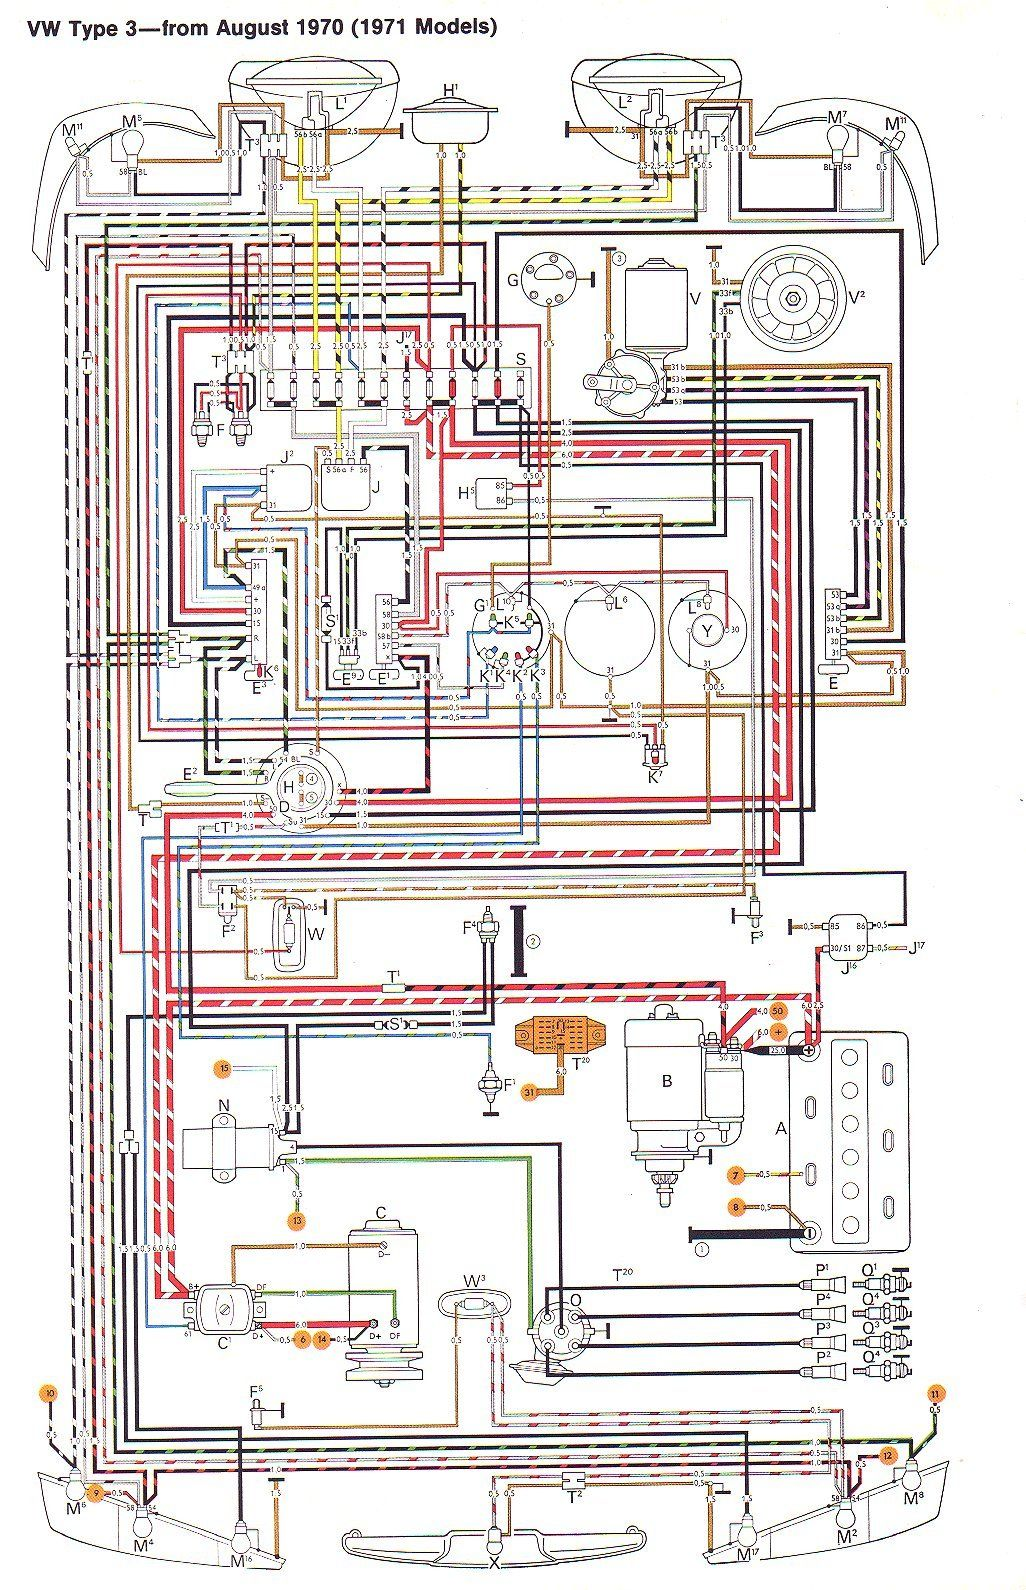 71 Vw T3 Wiring Diagram Mg Td Pinterest Vw, Volkswagen And Engine Ag Wiring  Diagram Td Wiring Diagram